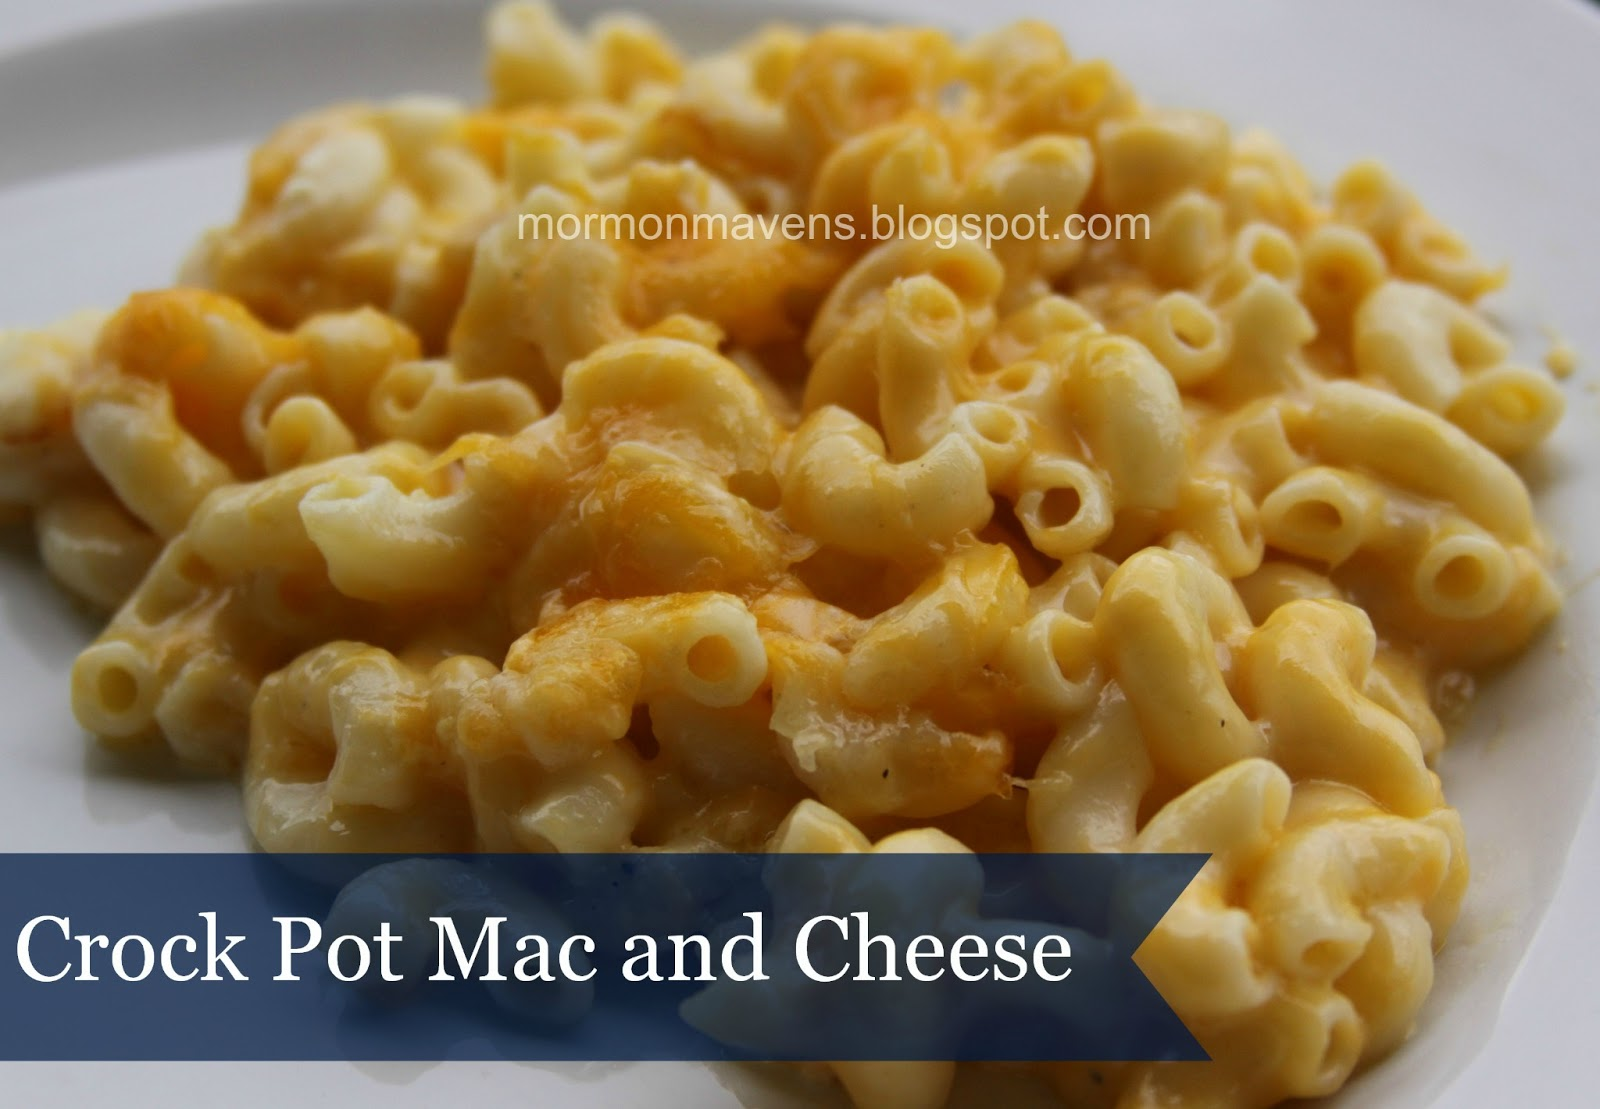 Mormon Mavens in the Kitchen: Crock Pot Mac and Cheese